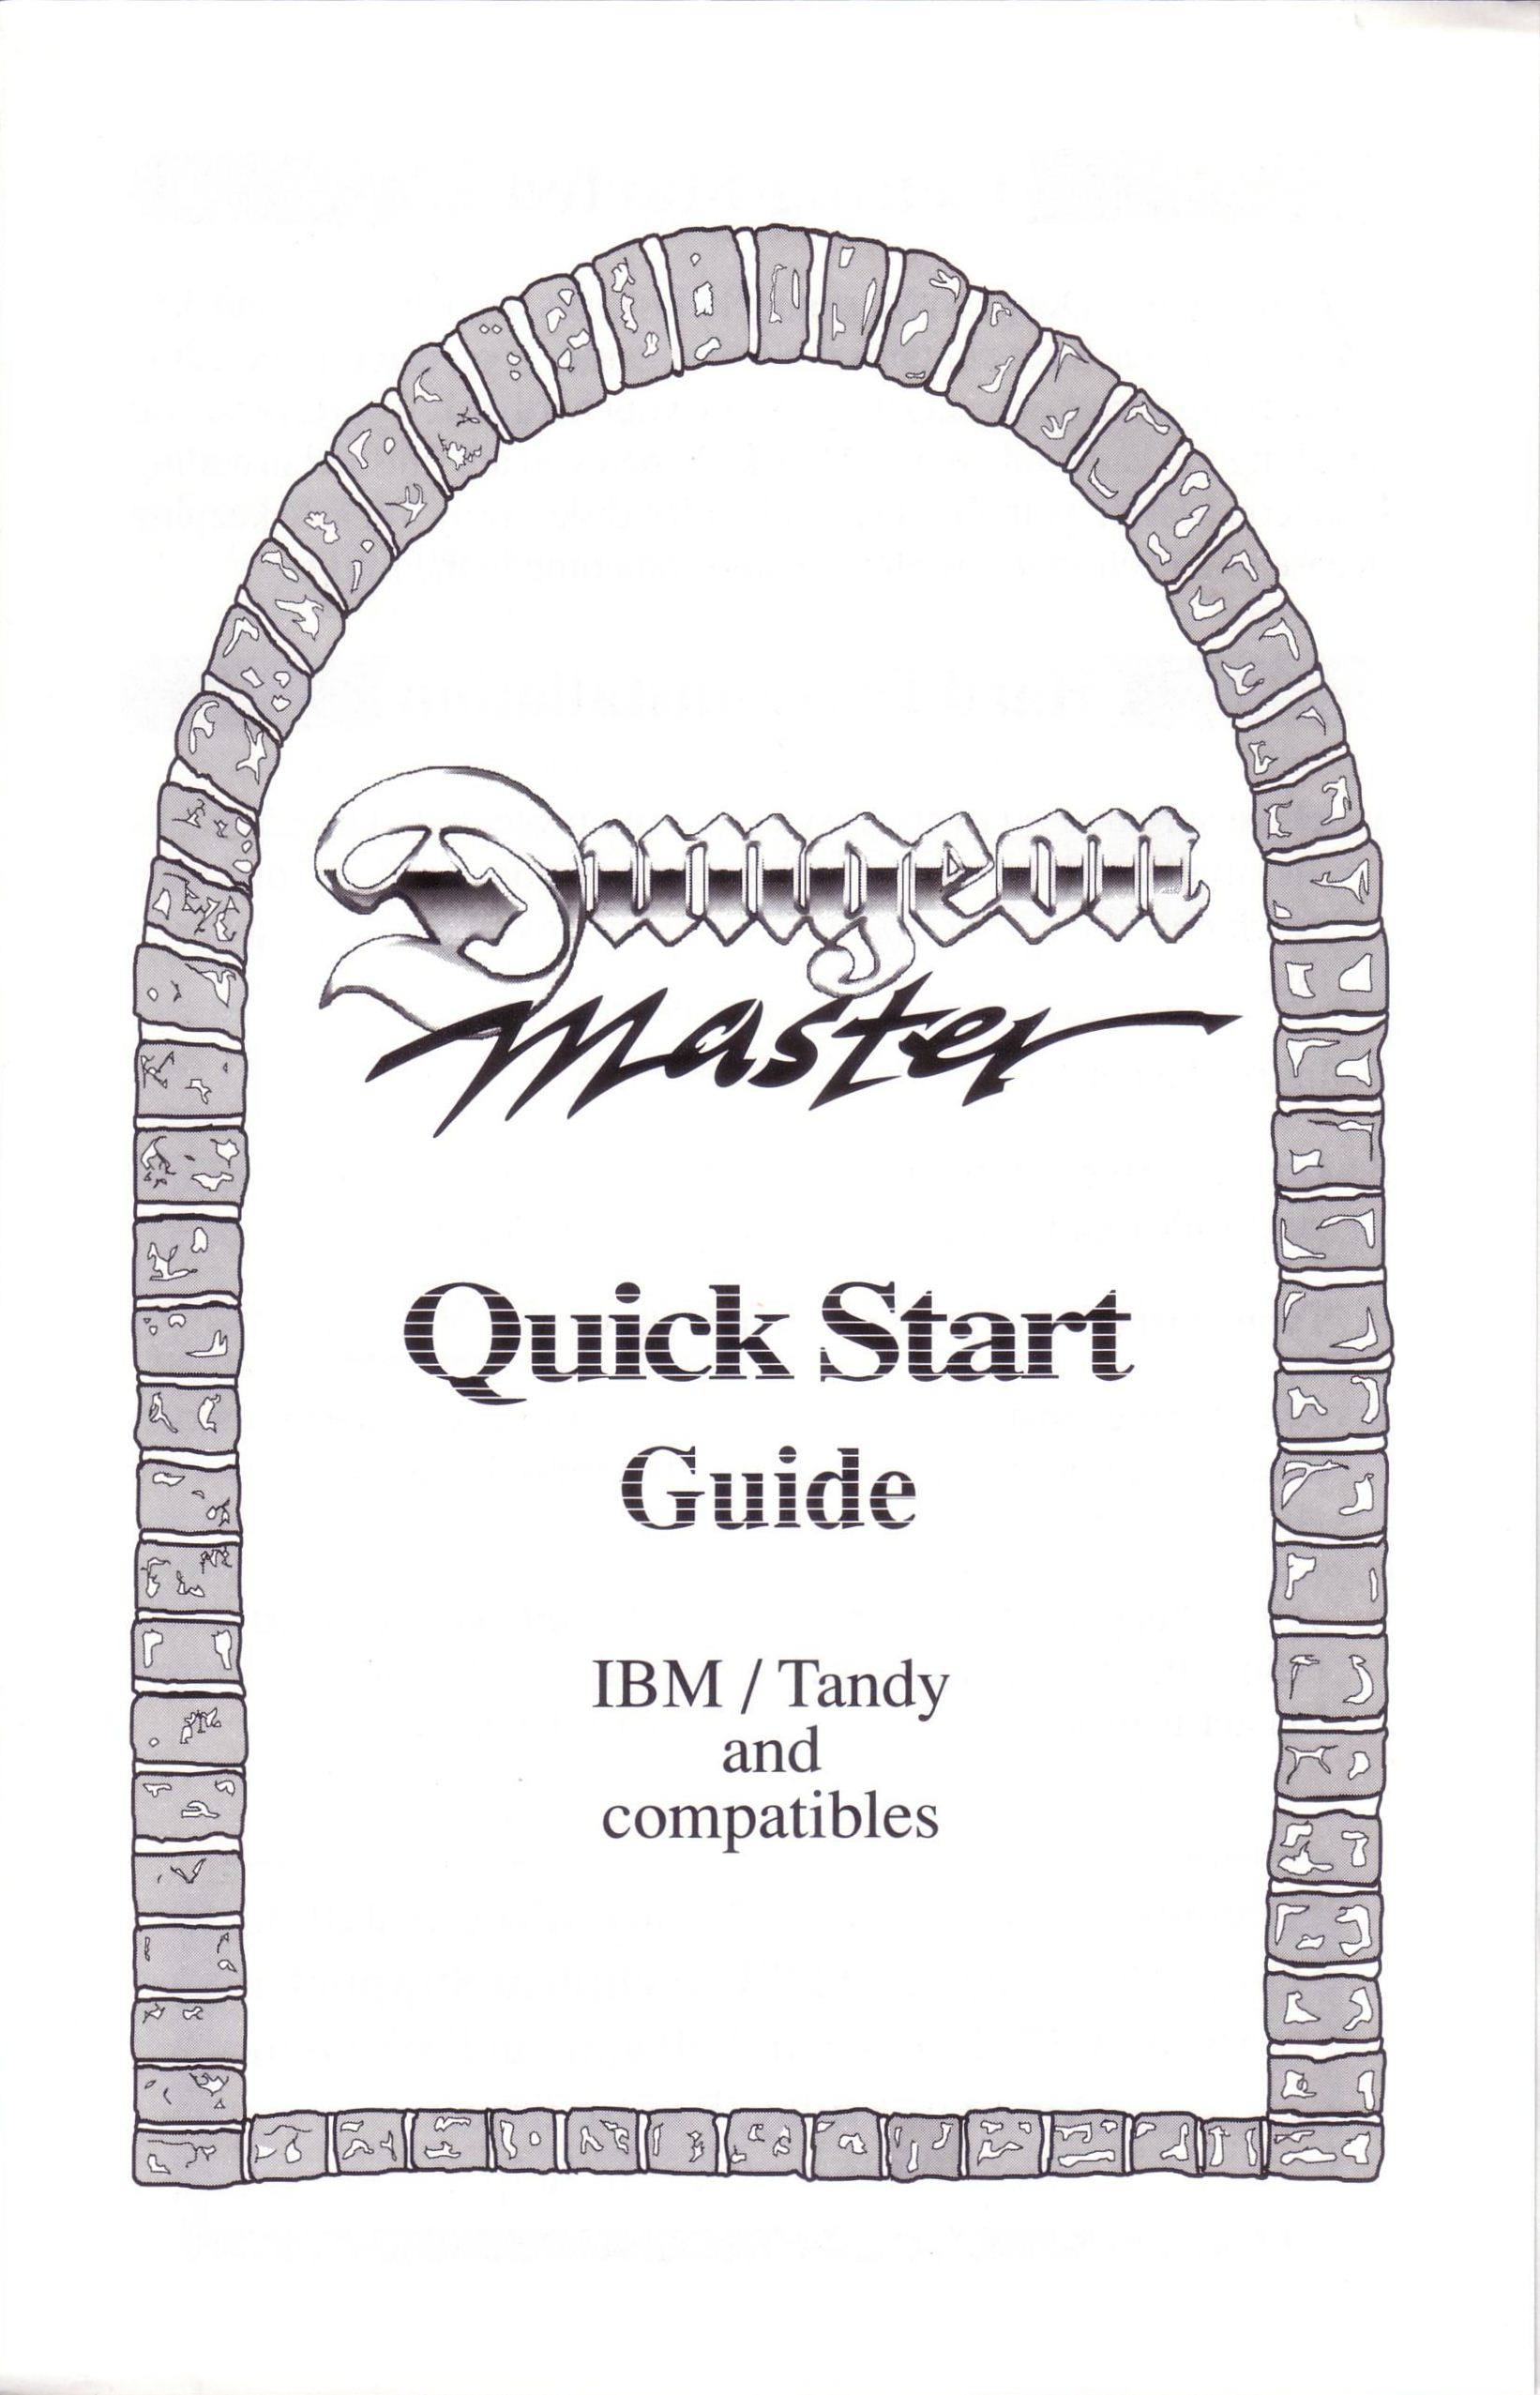 Dungeon Master for PC with FTL Sound Adapter (US Release) - Quick Start Guide Page 1